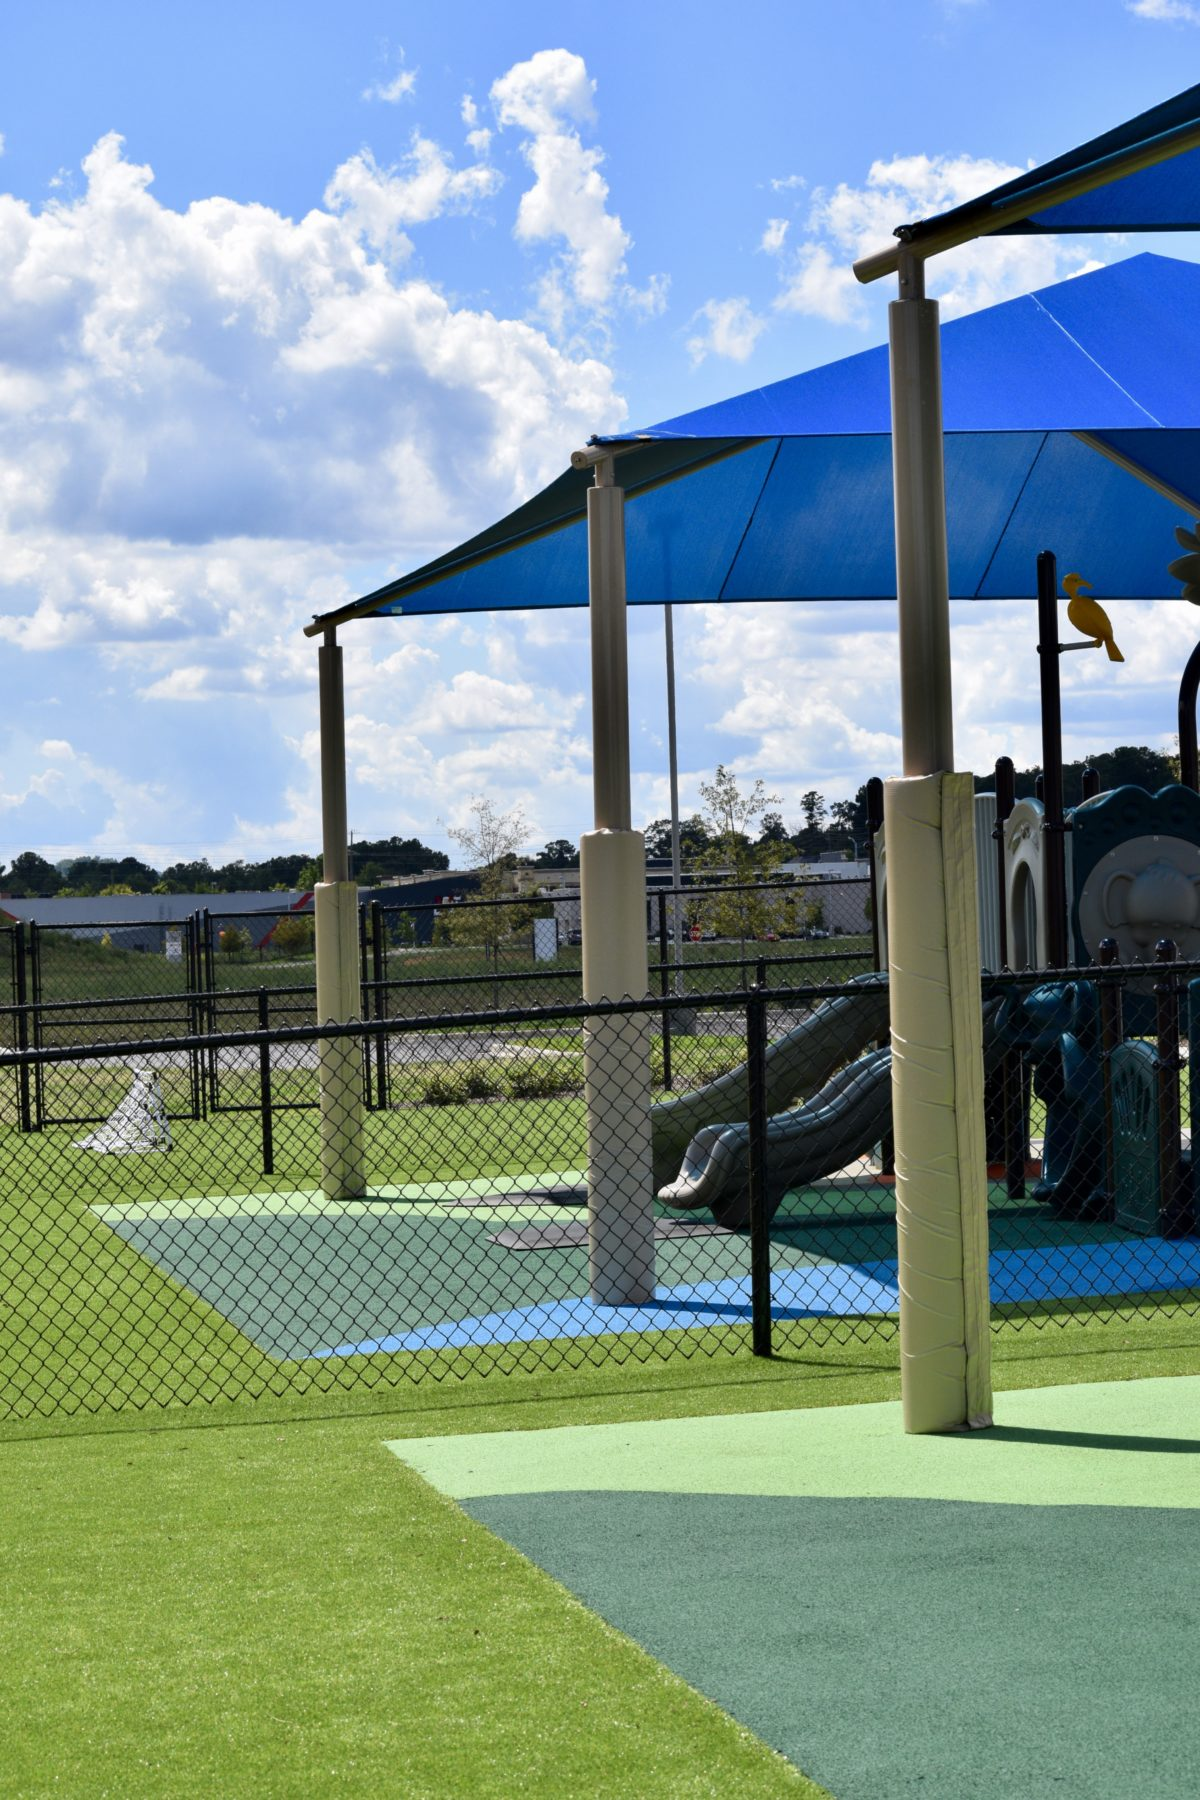 birmingham alabama daycare playground with shades and poured in place rubber safety surfacing 53